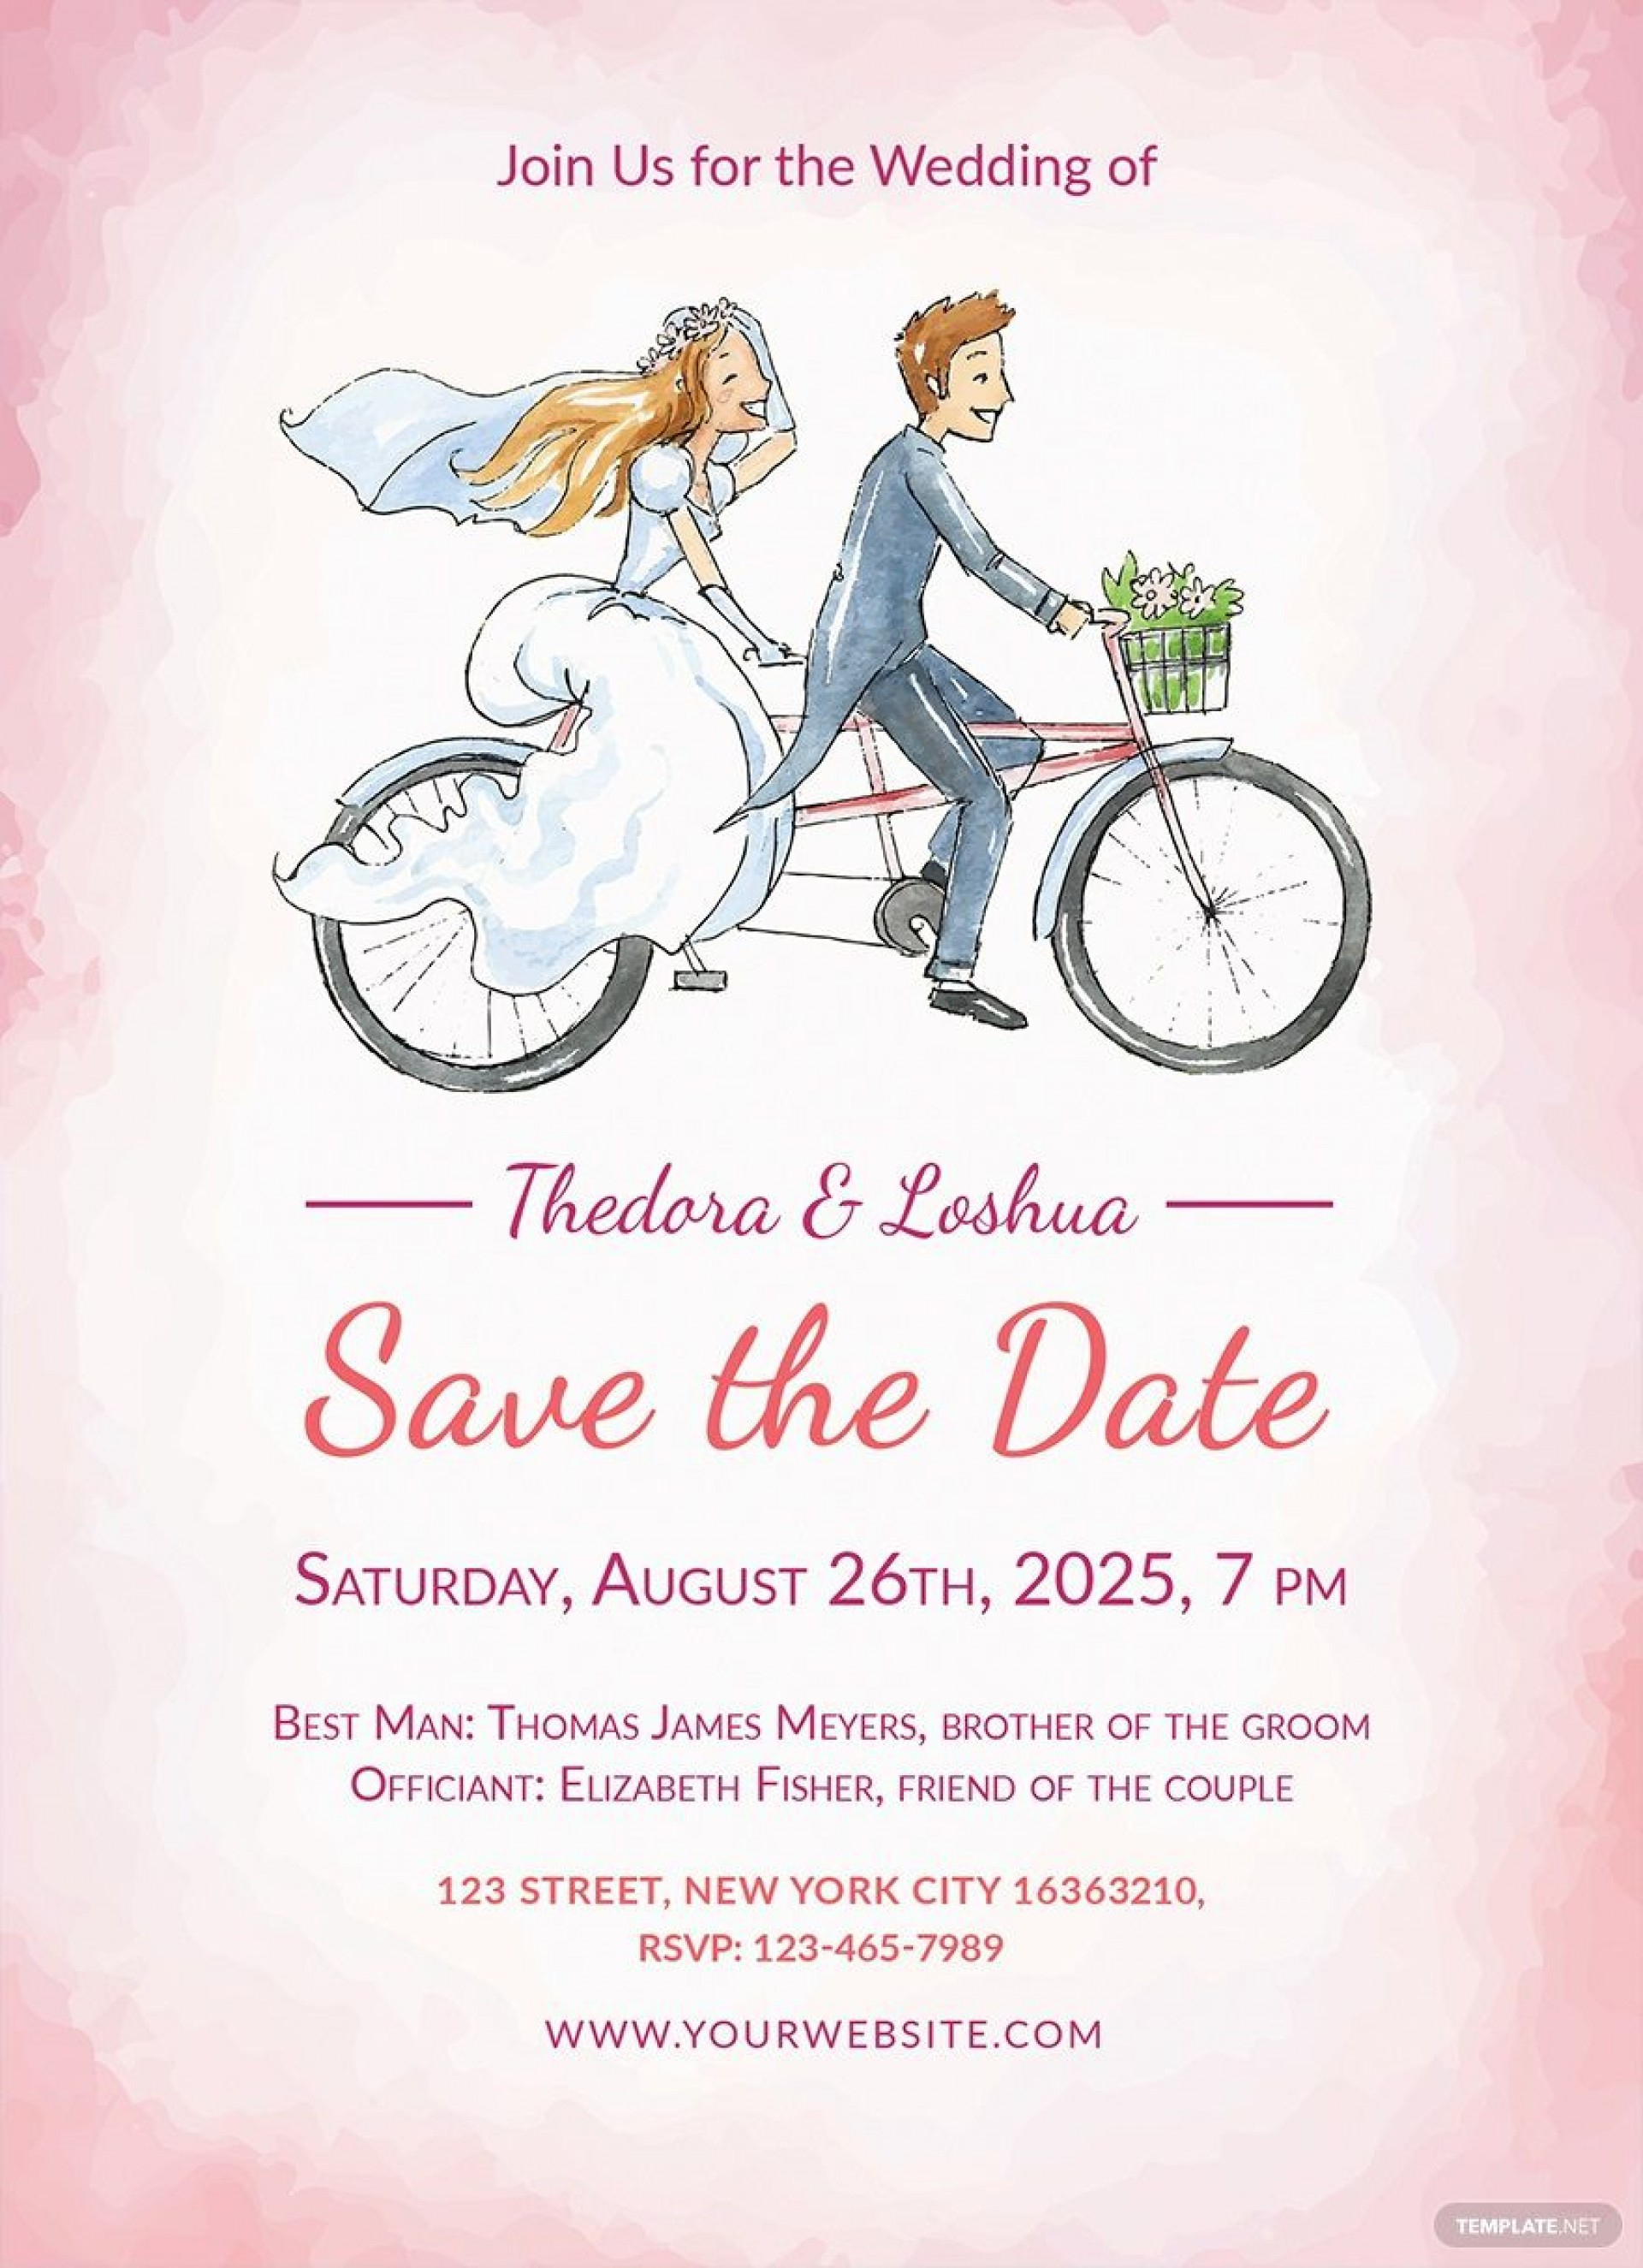 010 Awful Free Wedding Invitation Template For Word 2019 Picture 1920